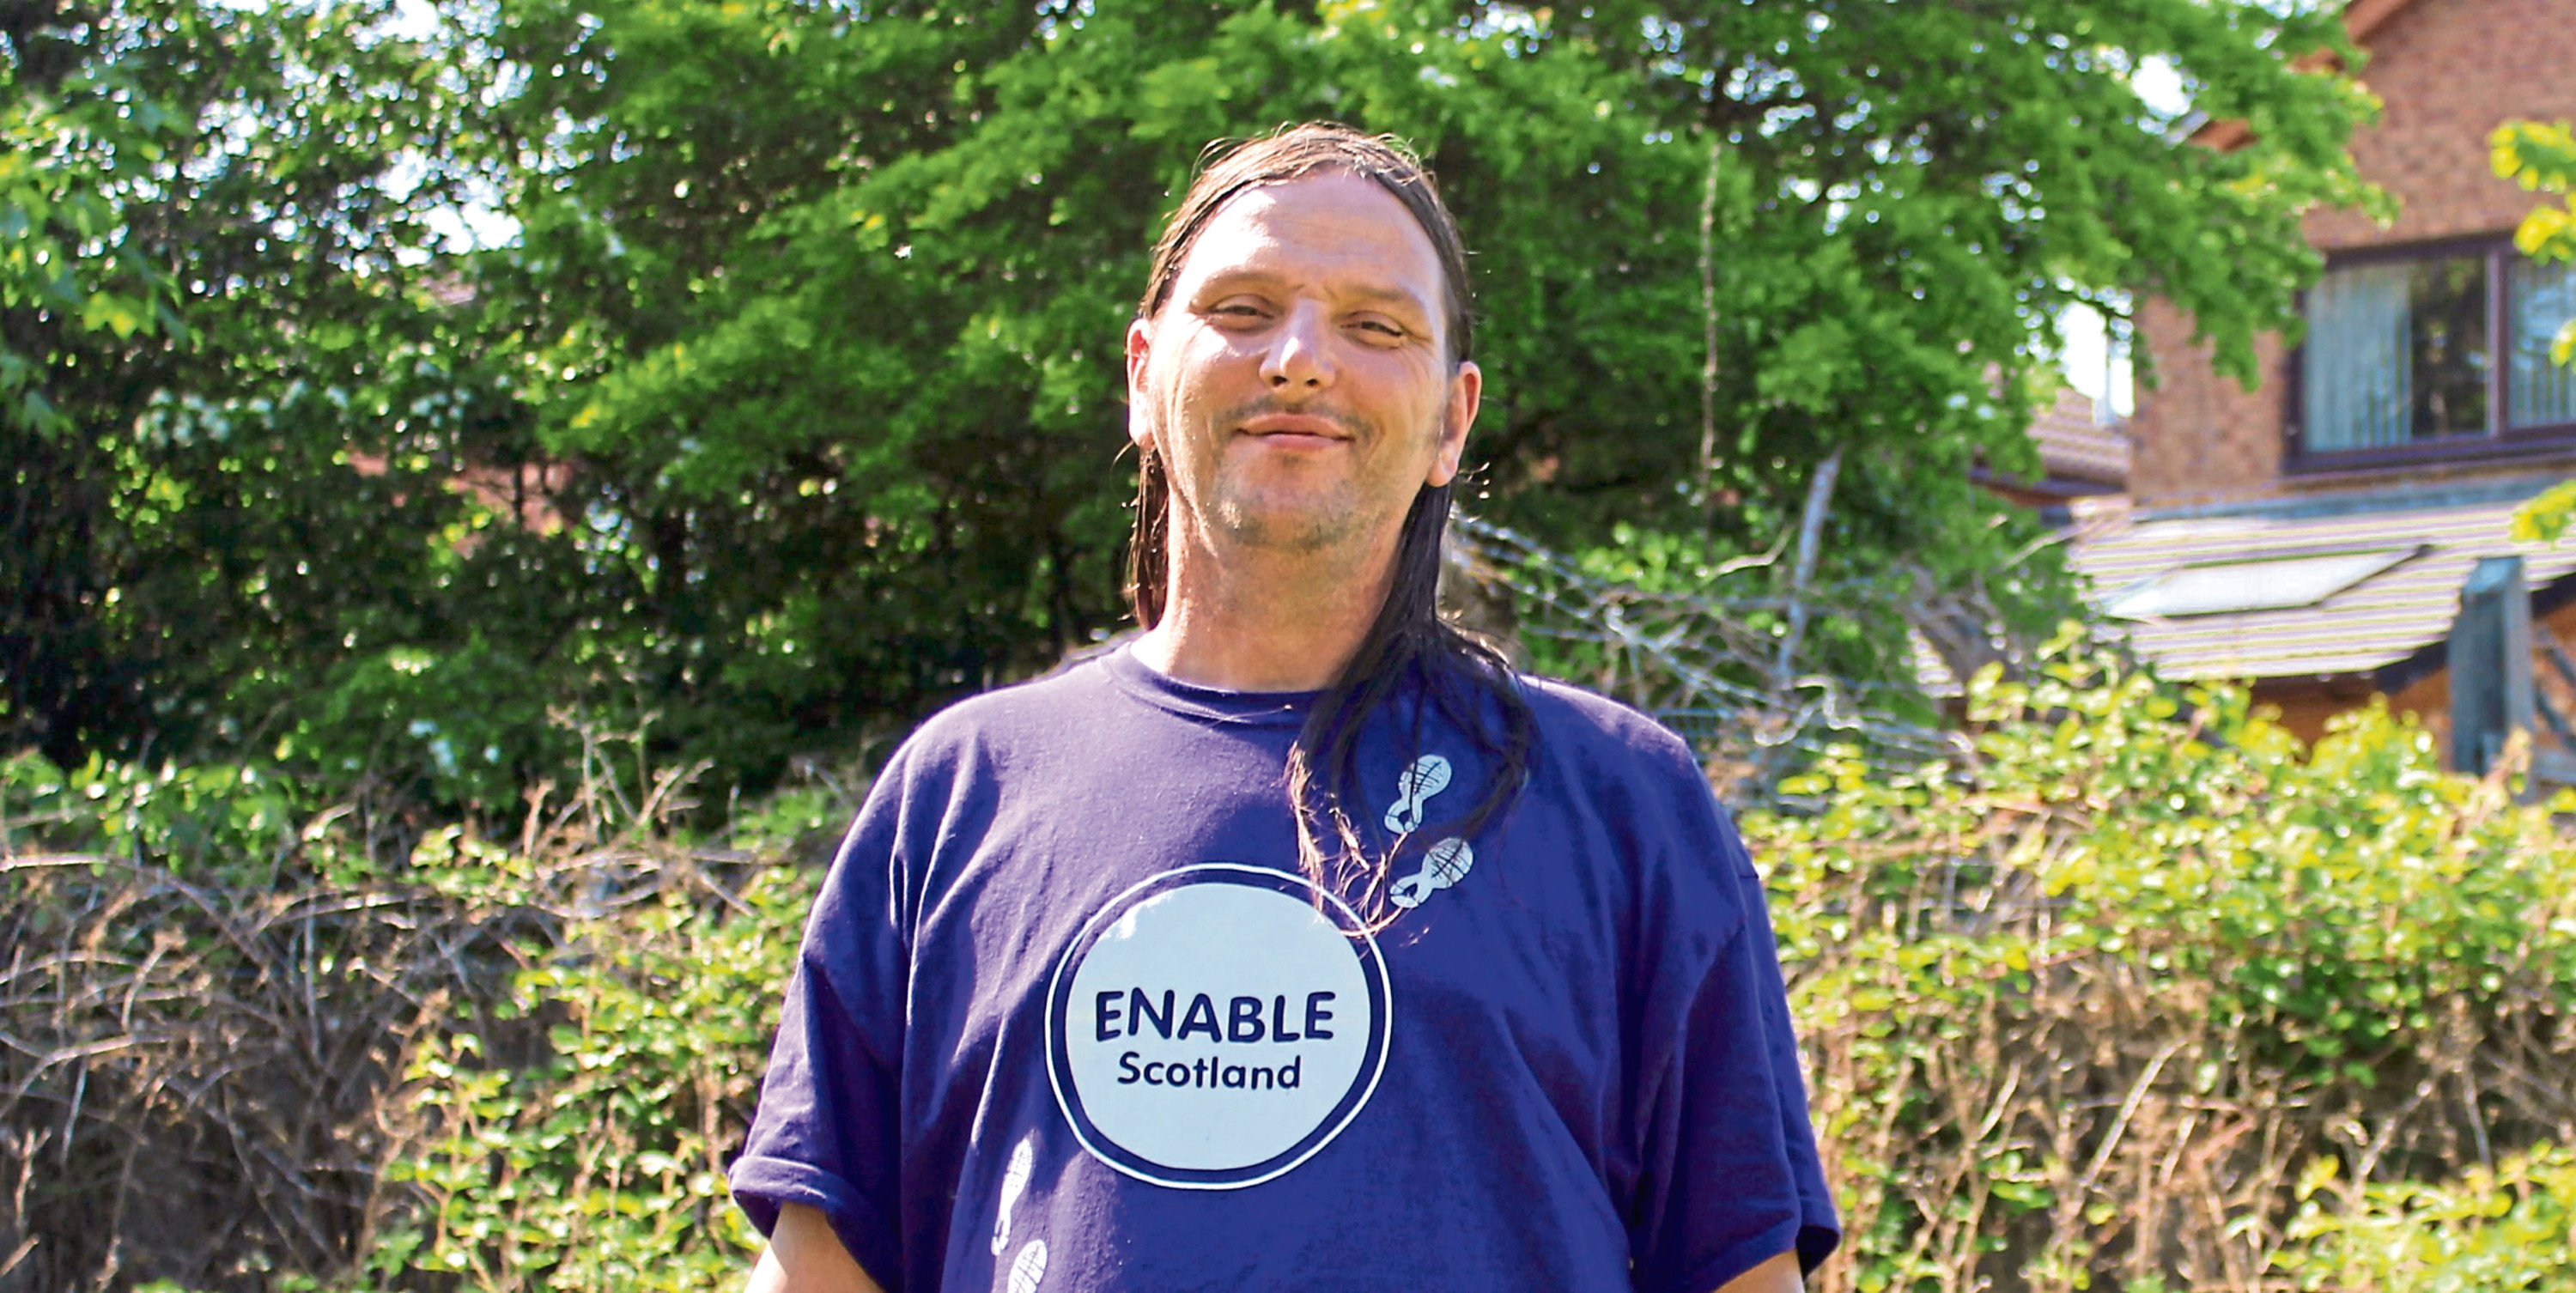 John Feehan has a learning disability and suffered a lot of anxiety after being diagnosed with Hodgkin's lymphoma